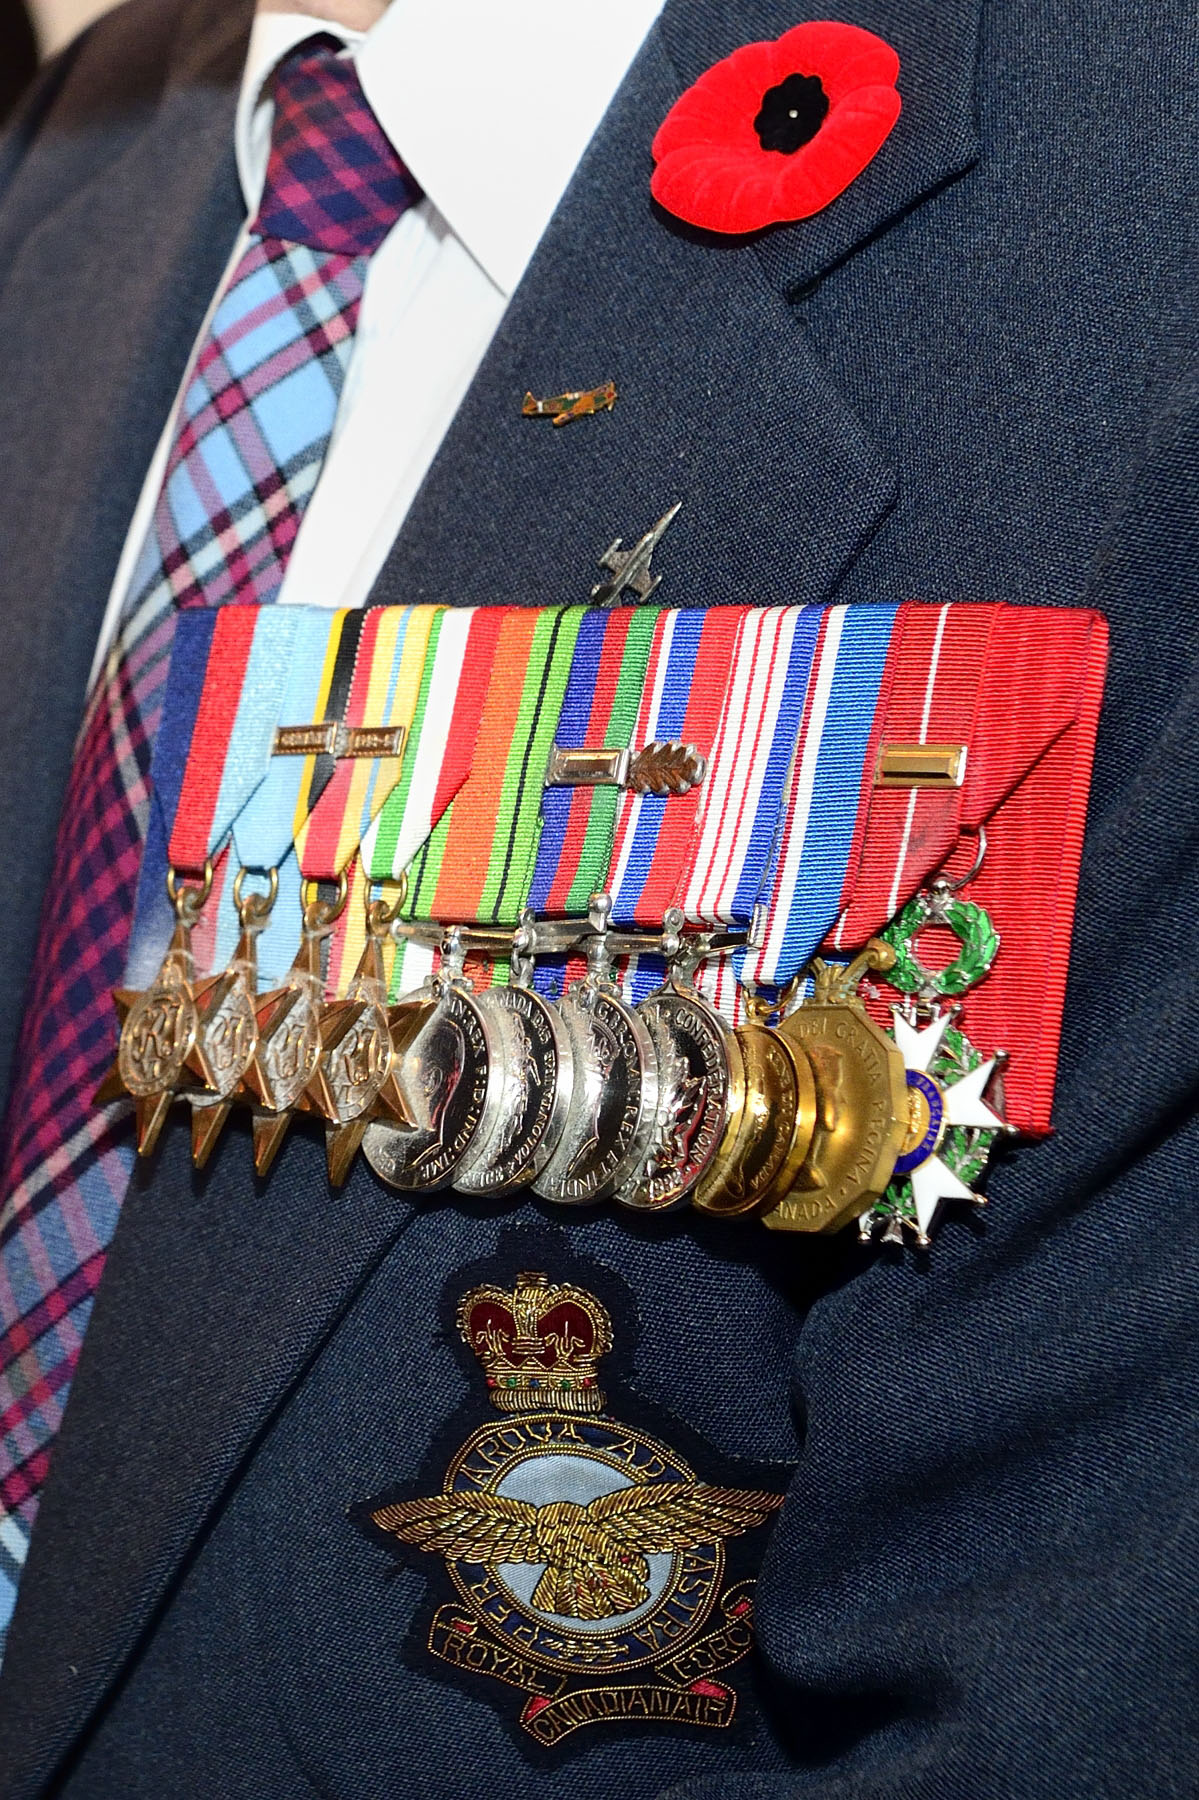 Each year, the poppy blossoms on the lapels and collars of more than 18 million Canadians.